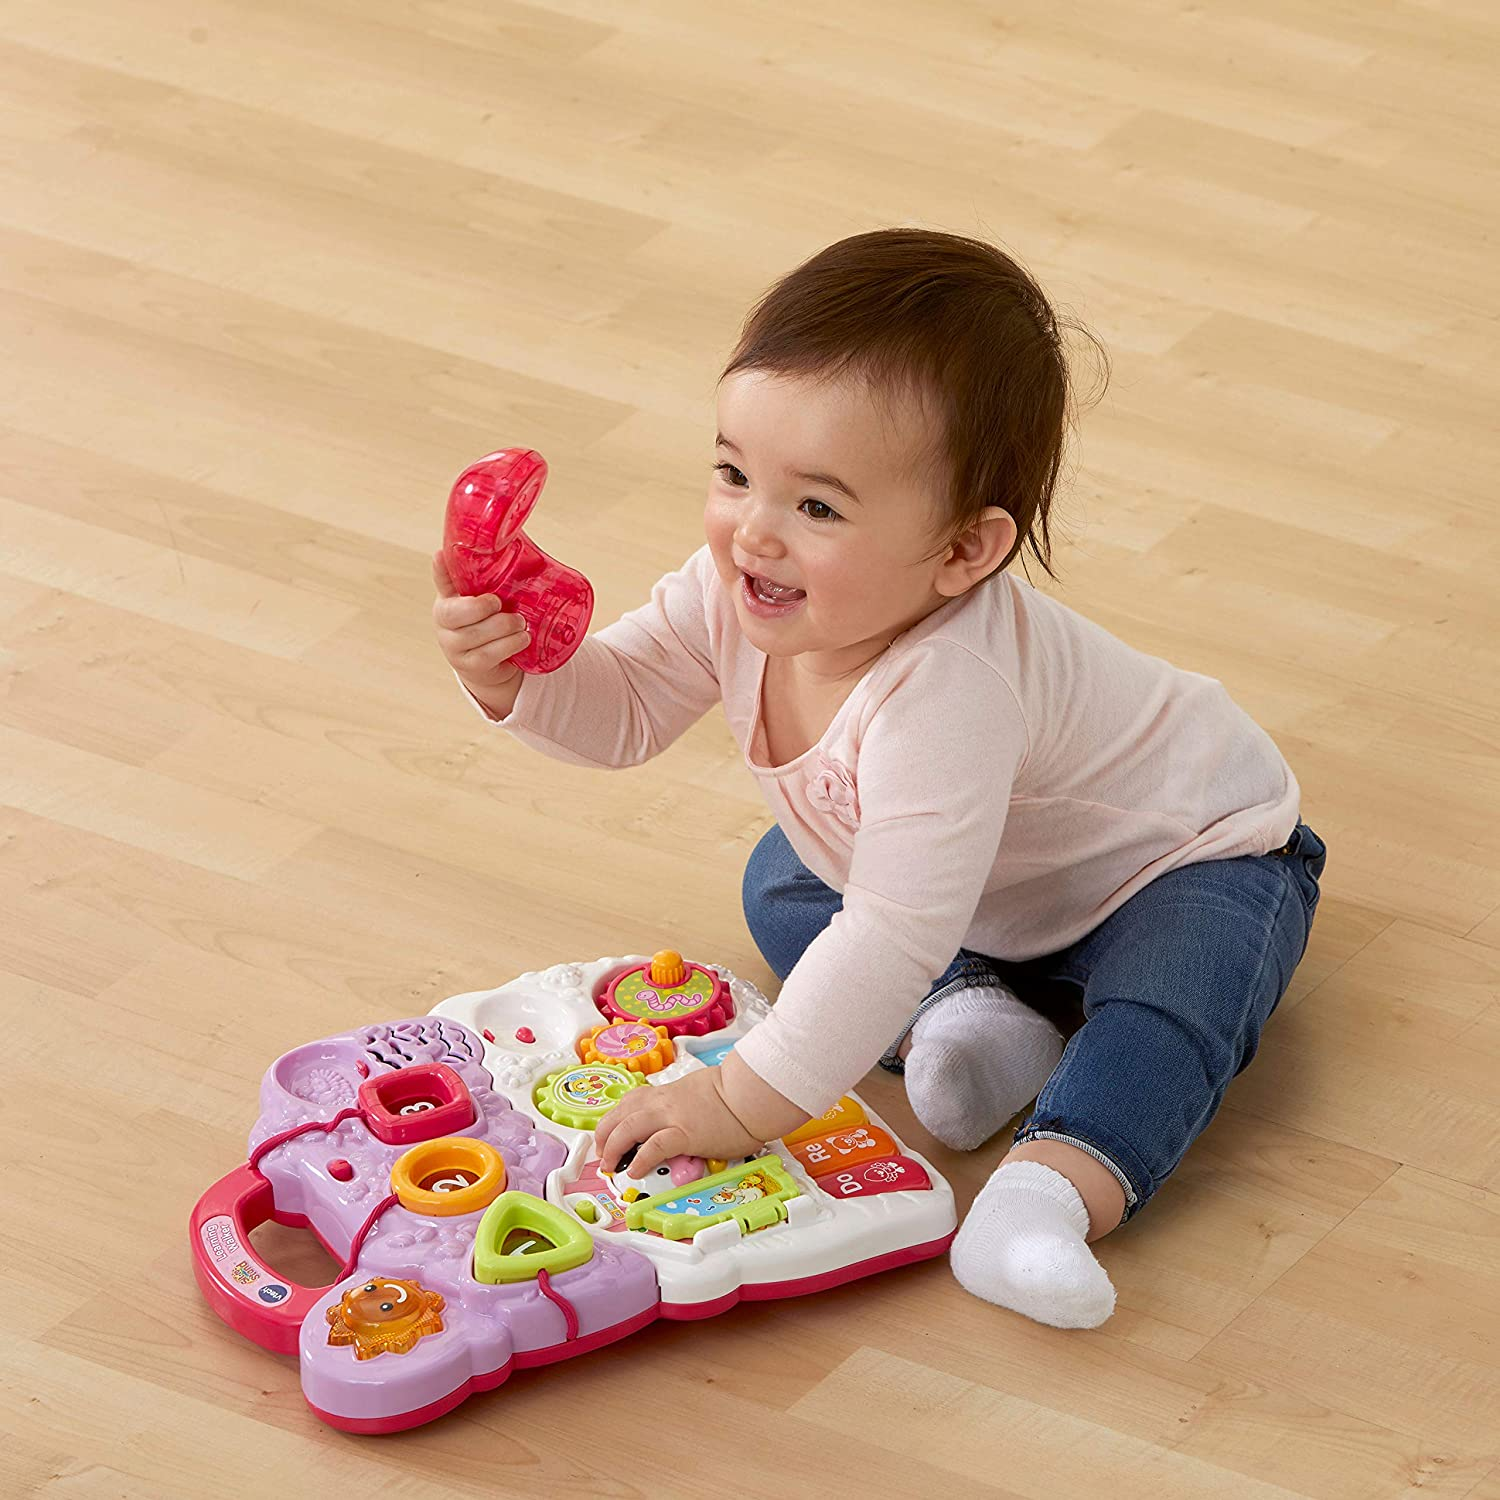 Fun Toys That Will Keep Your Baby Busy